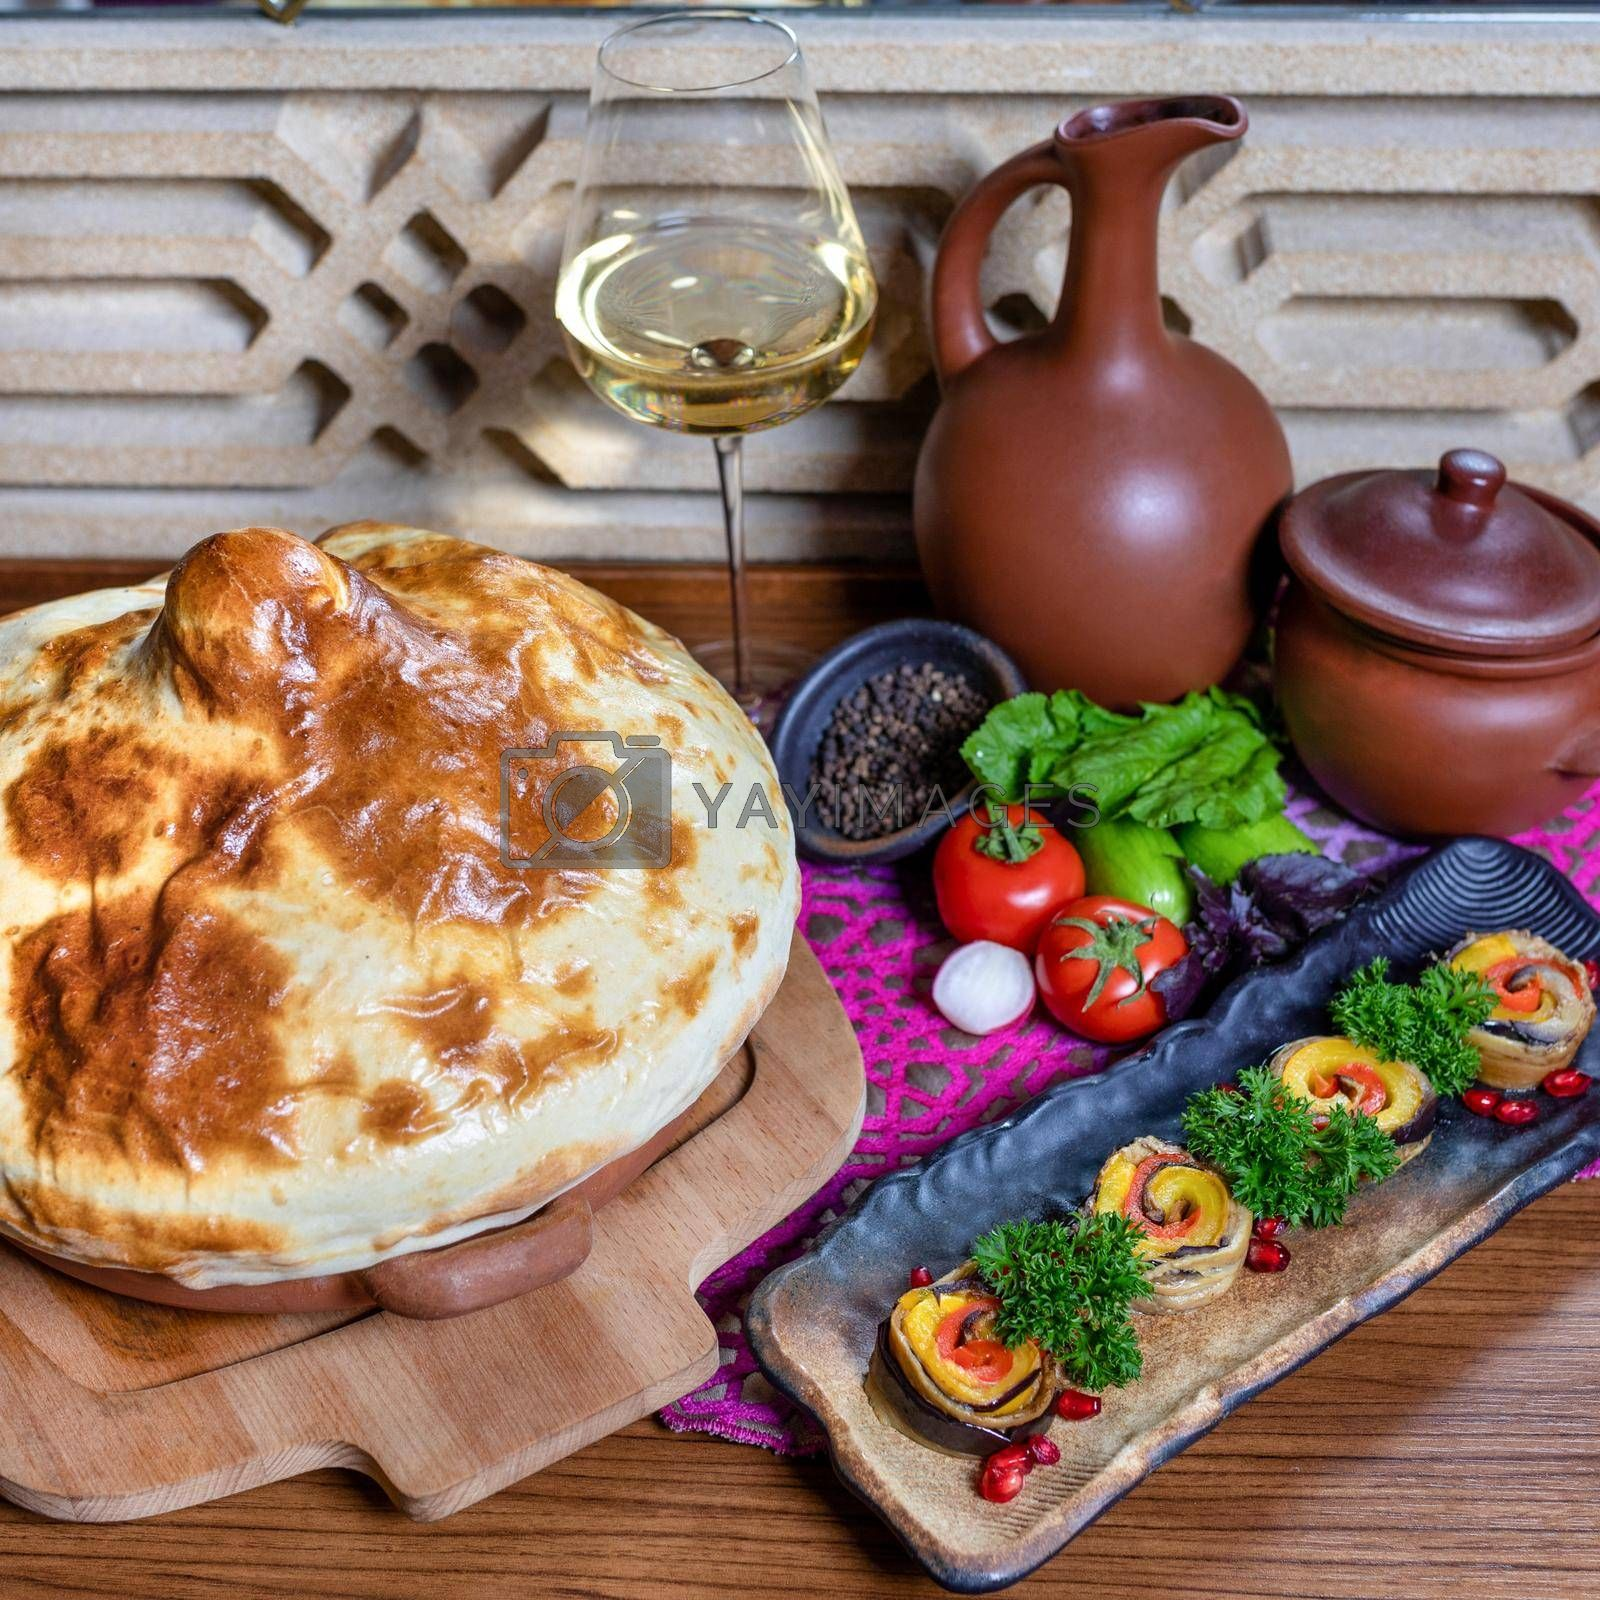 Vegetable snack with bread and white wine glass